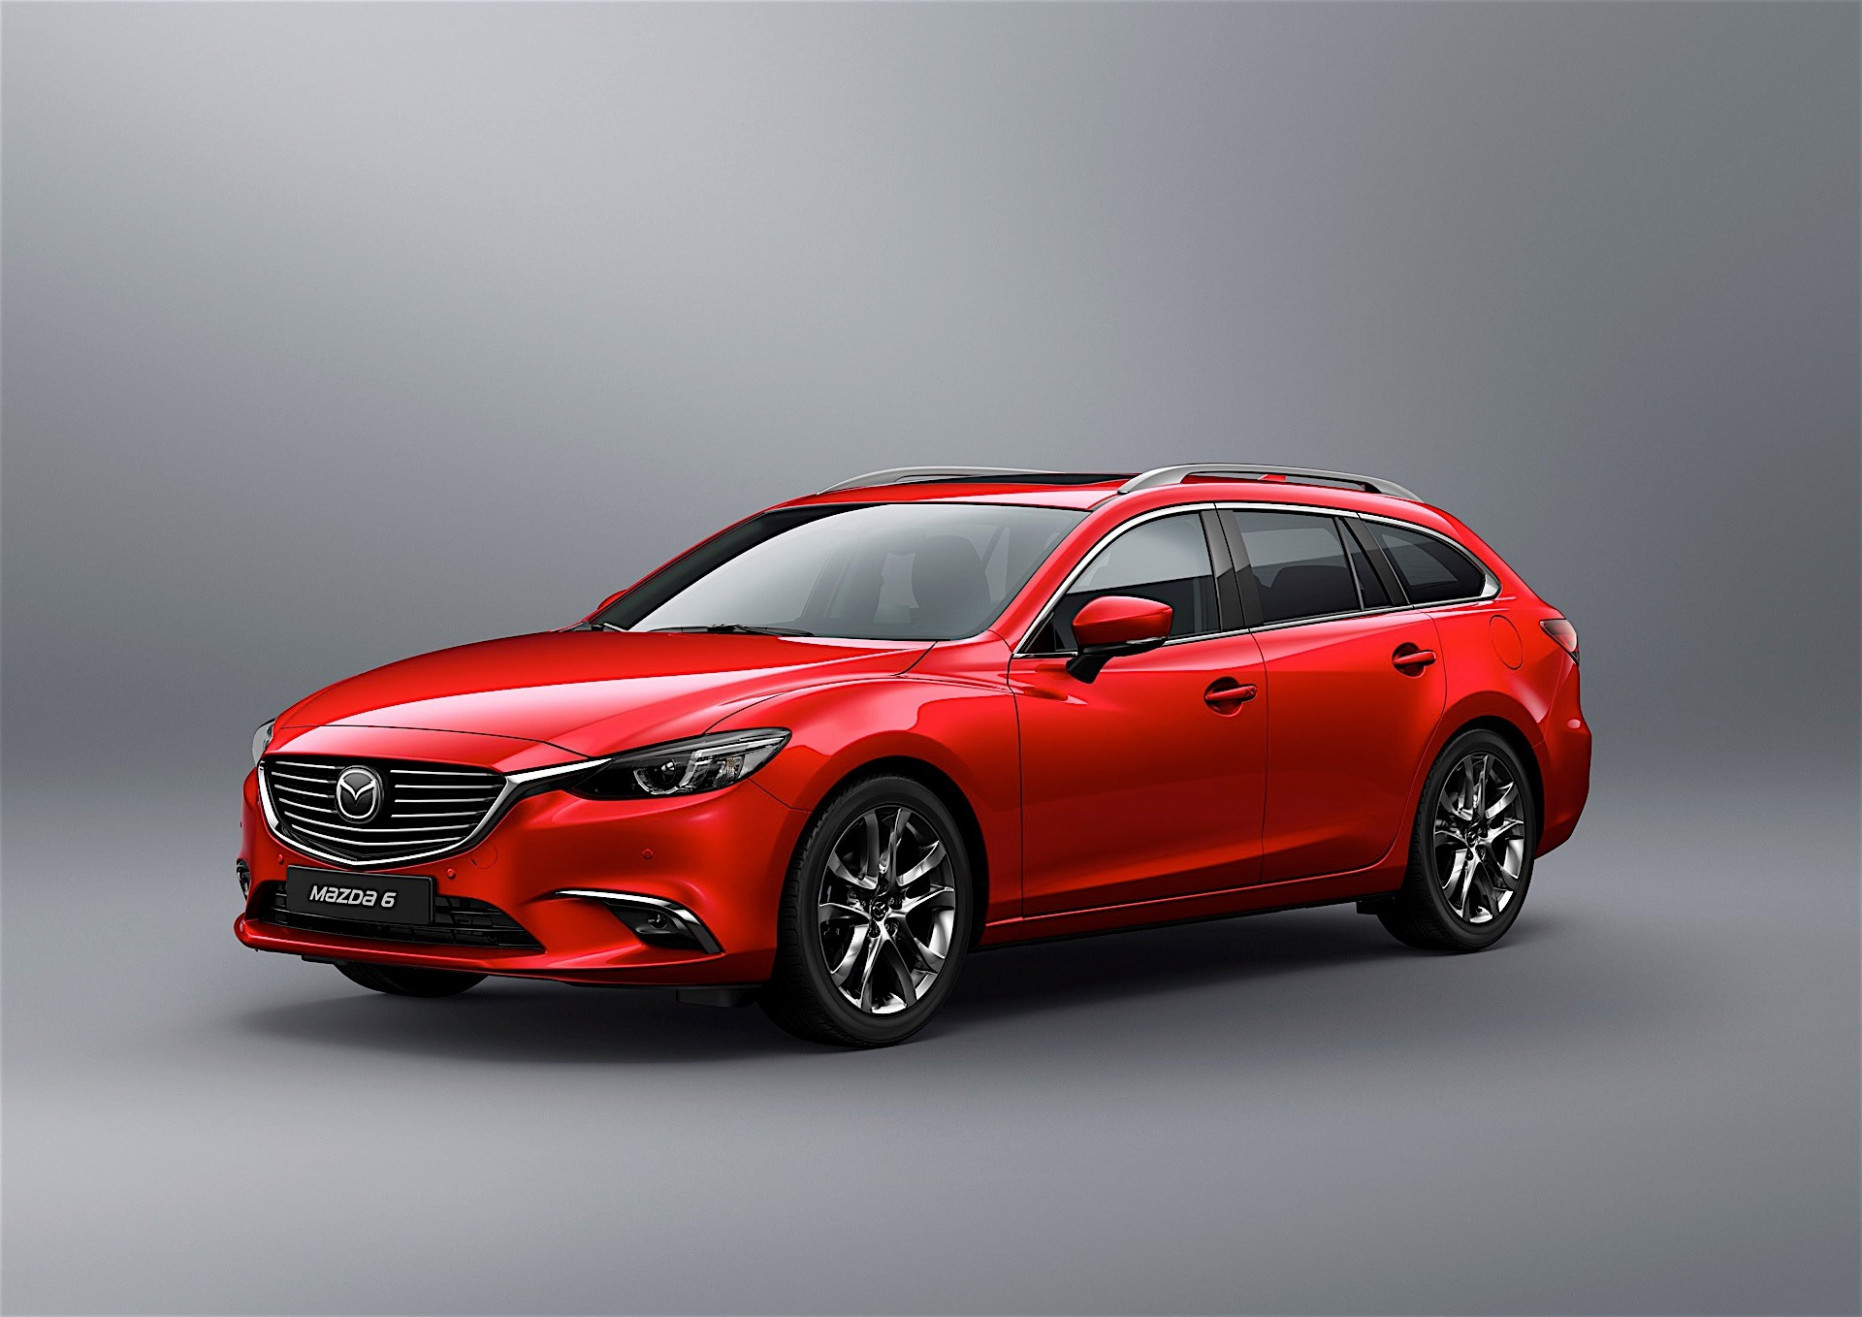 Rumor: 8 Mazda8 Goes RWD, Shares Toyota-sourced Platform With ...